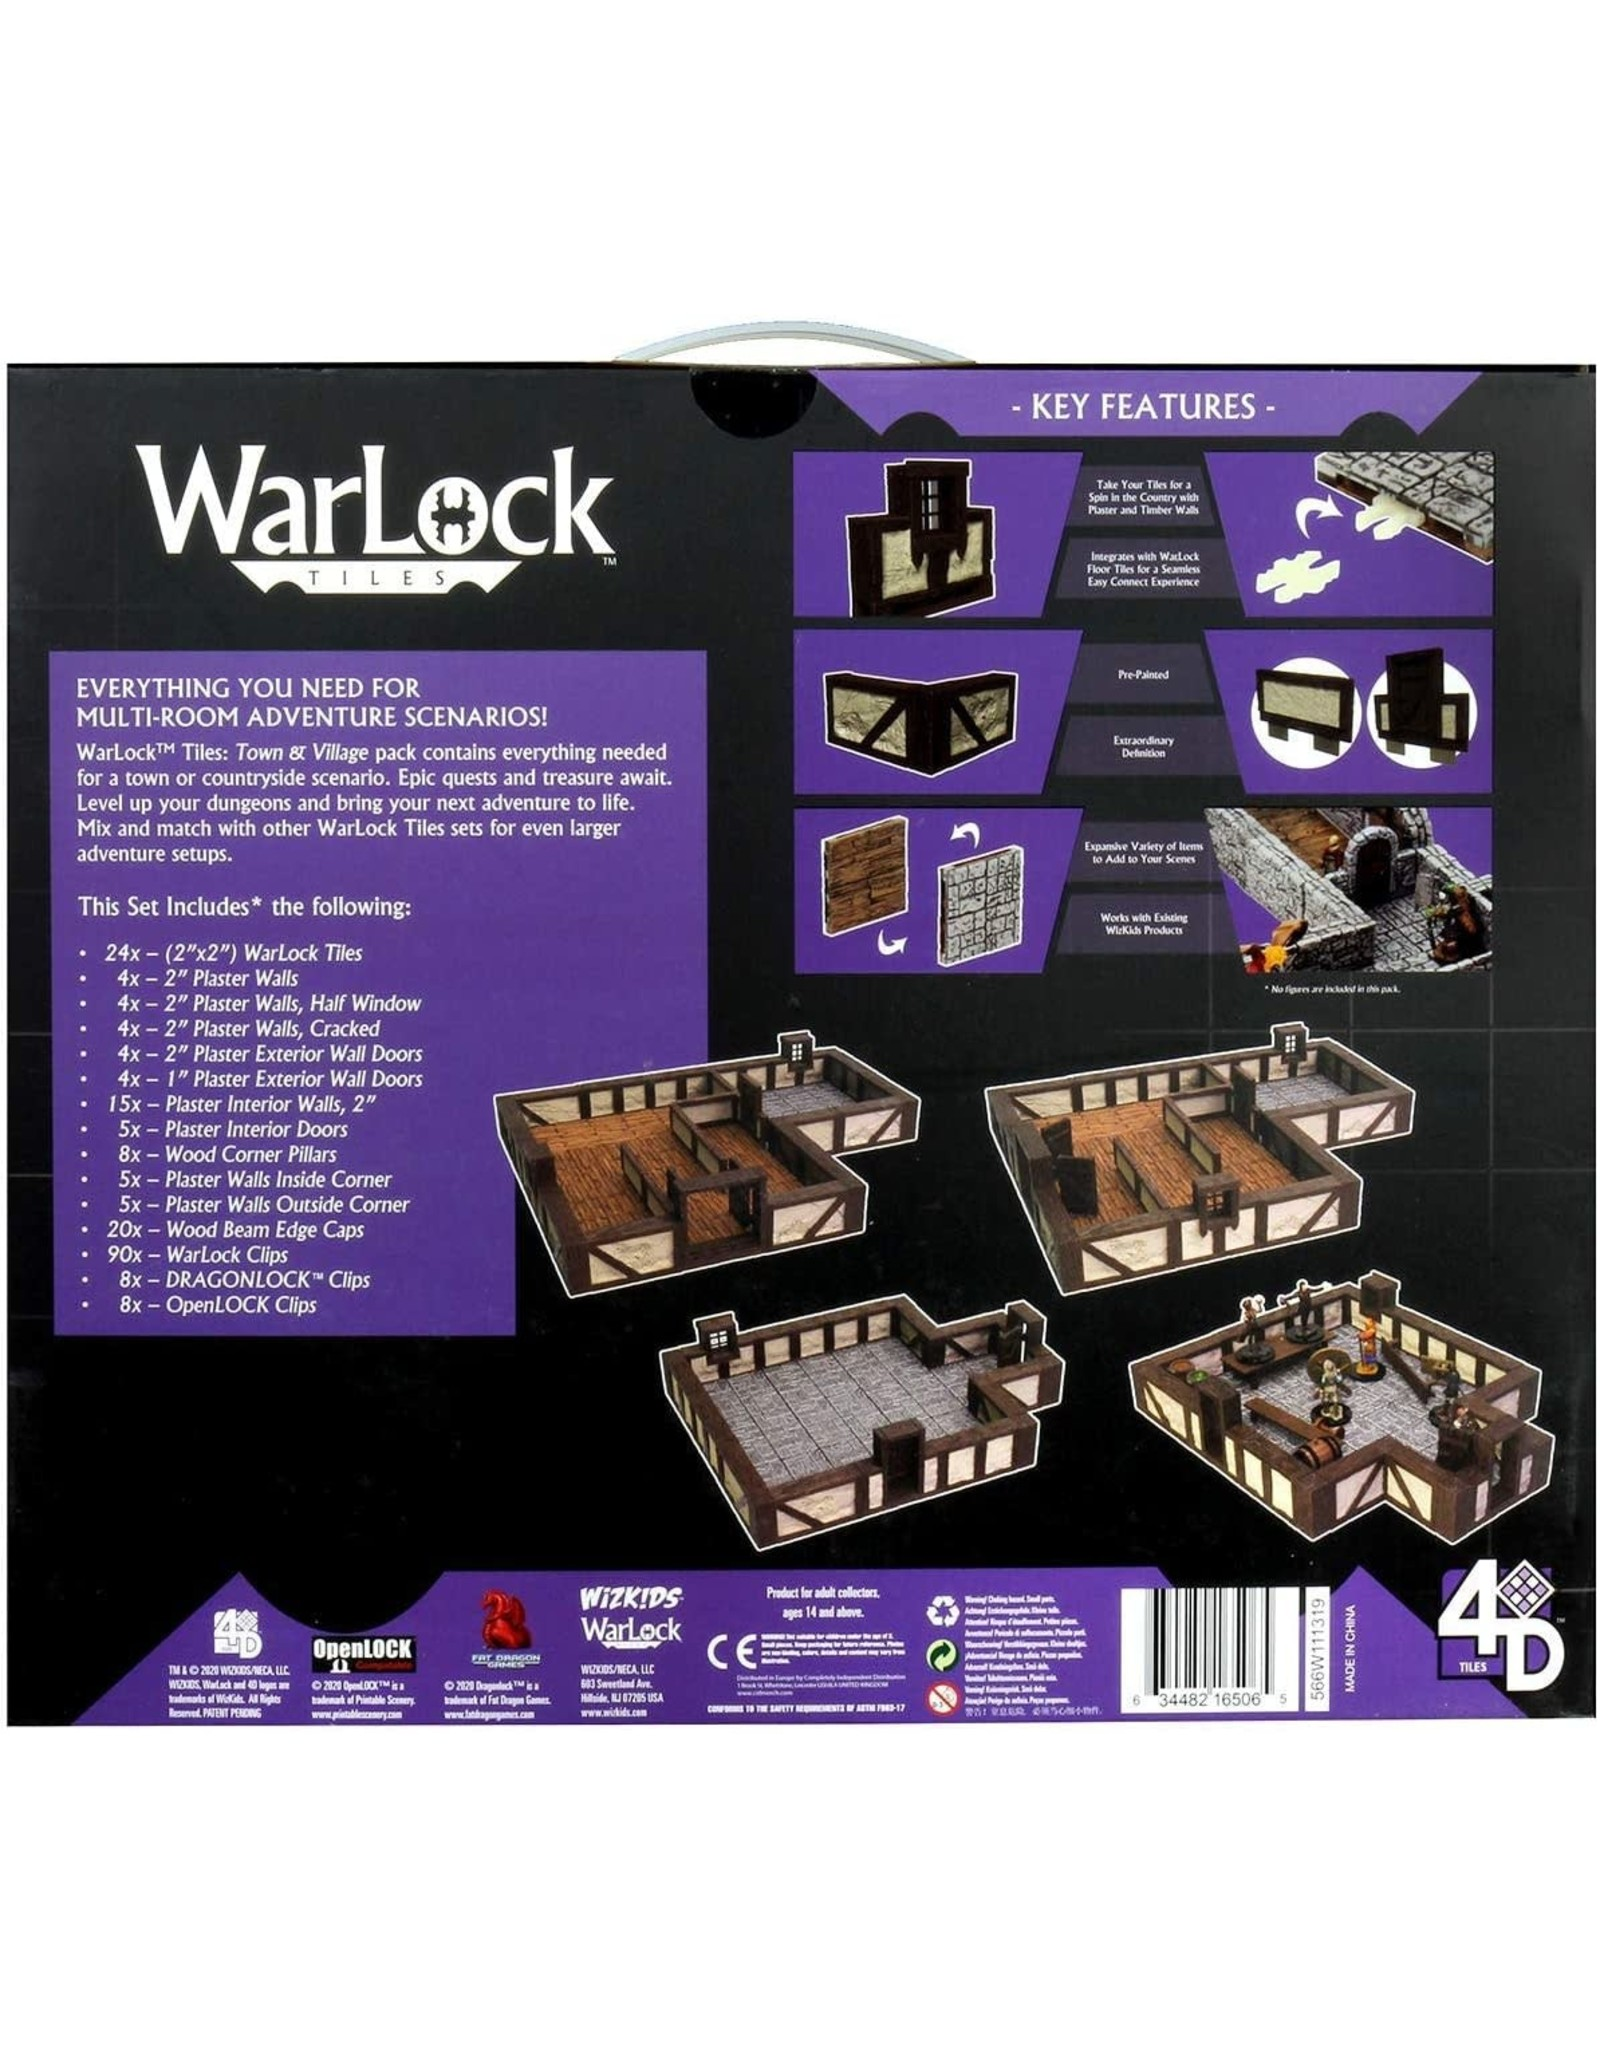 WIZKIDS WARLOCK DUNGEON TILES: TOWN AND VILLAGE